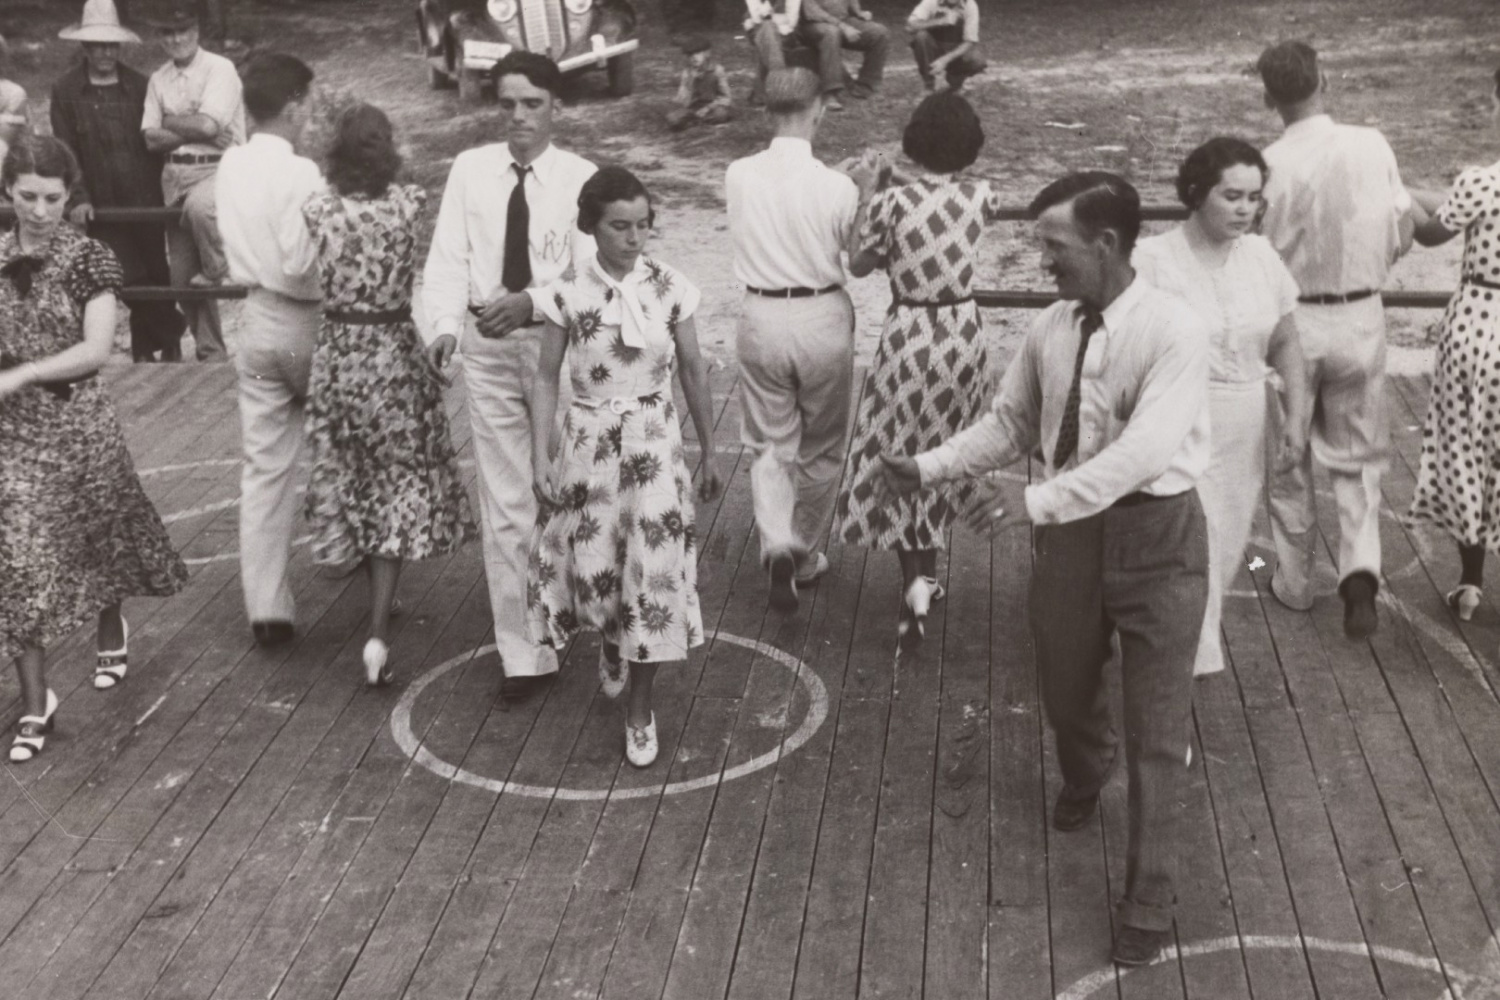 Townsfolk participating in a community dance, Alabama, 1937